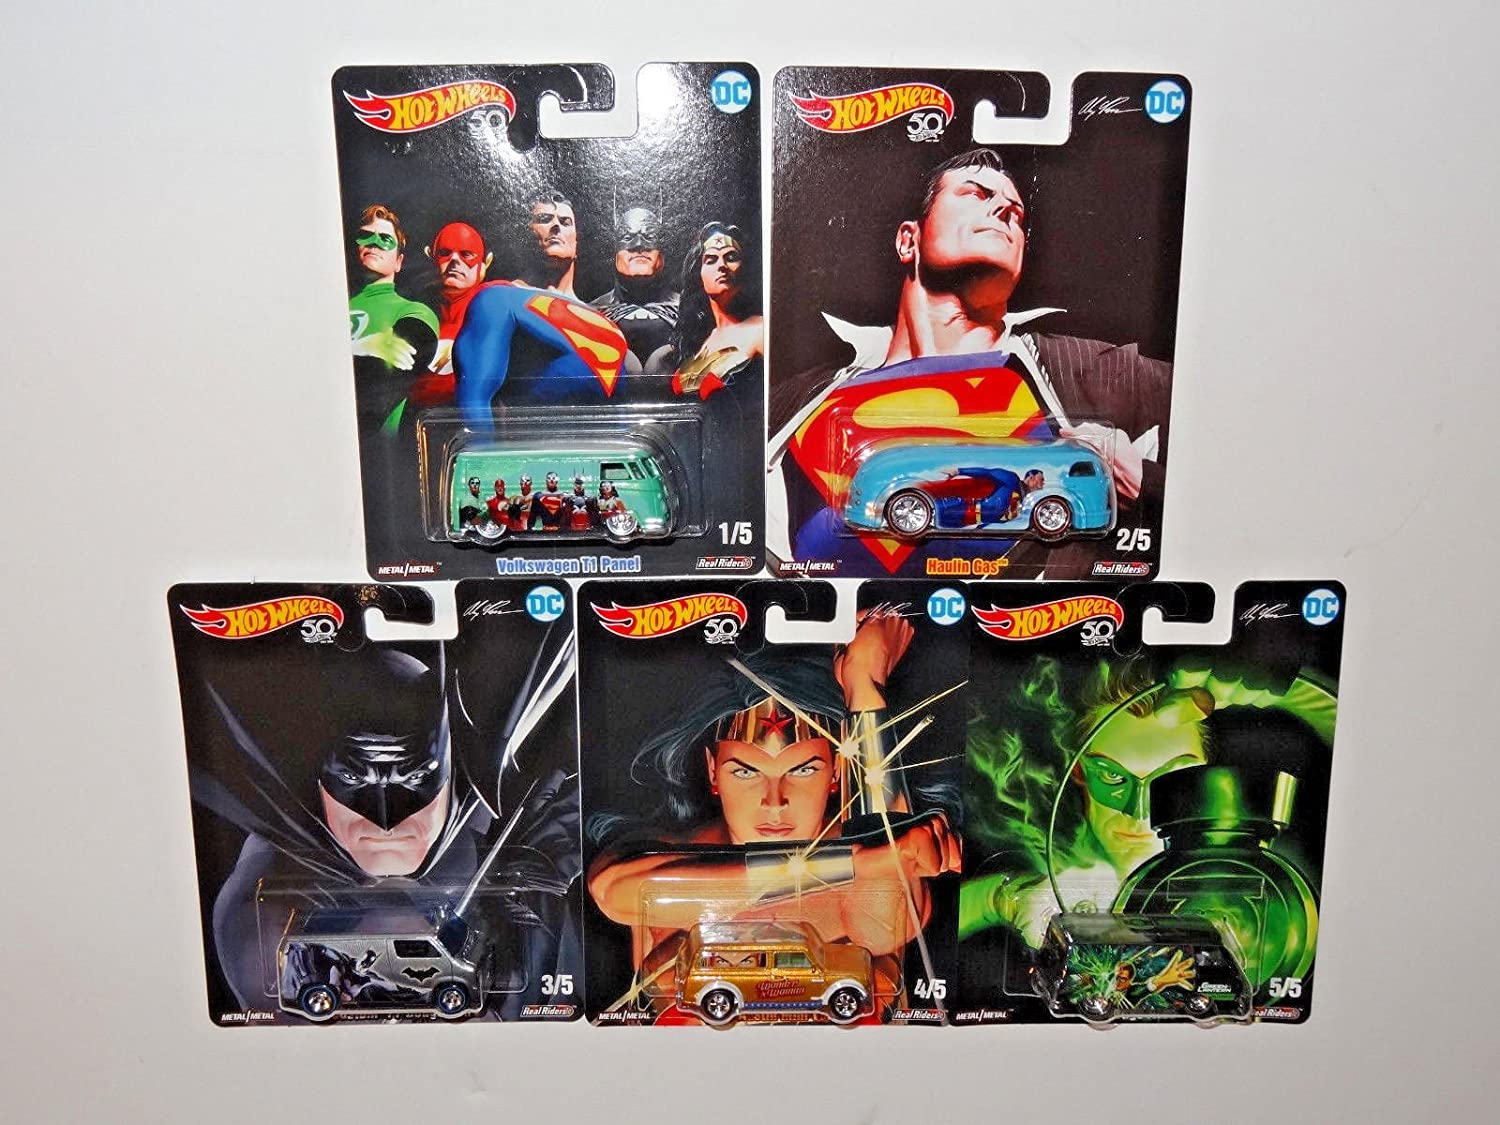 Hot Wheels Pop Culture 2018 Alex Ross DC Heroes Series Premium Adult Collectible Diecast Cars Set of 5